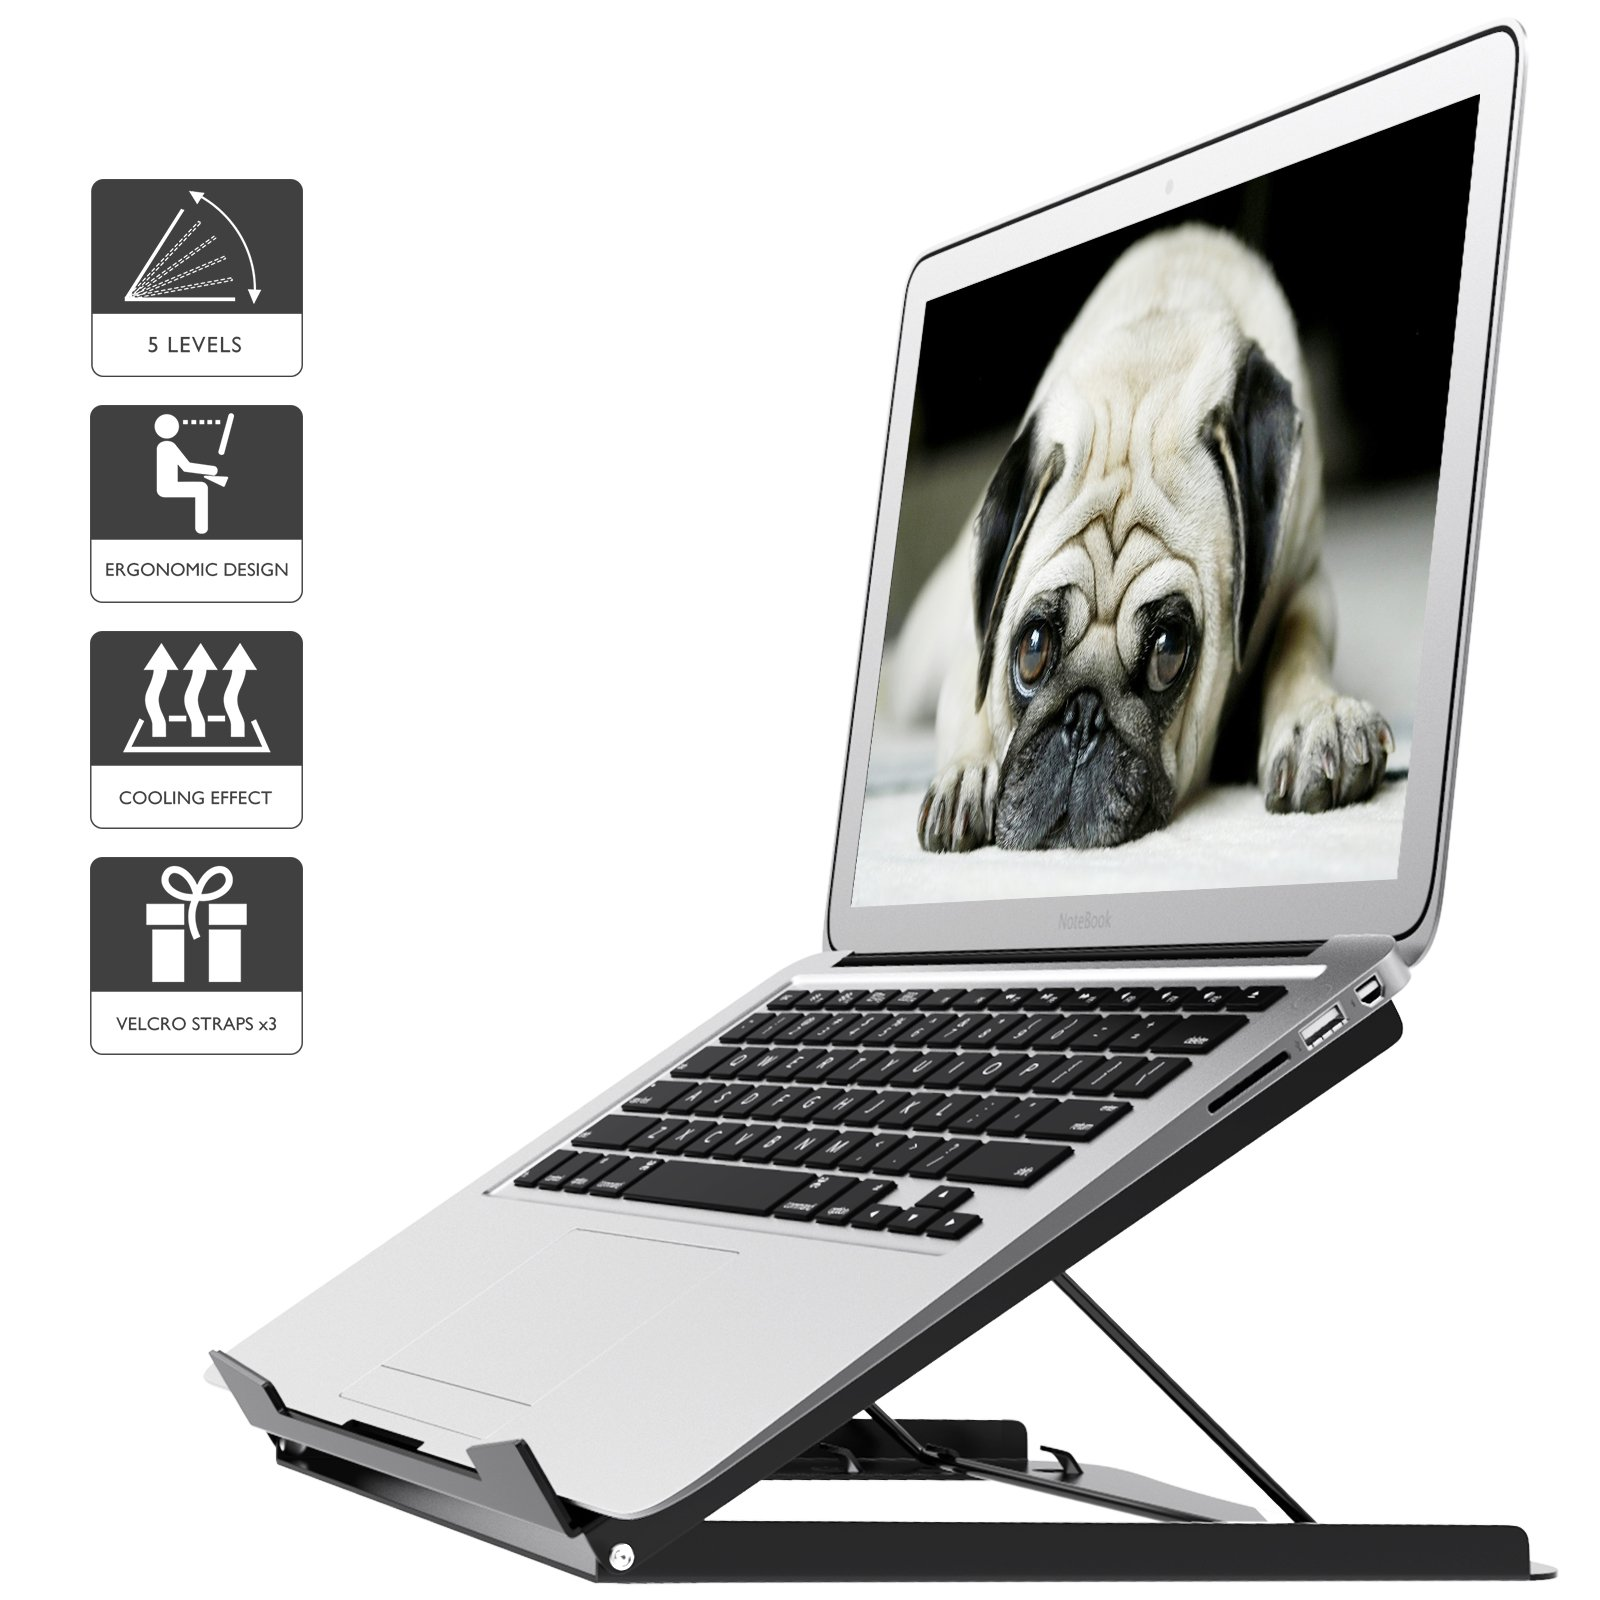 1home Laptop Stand Egonomic Riser Portable Notebook Stand Hegiht Adjustbale for MacBook, Black, Iron